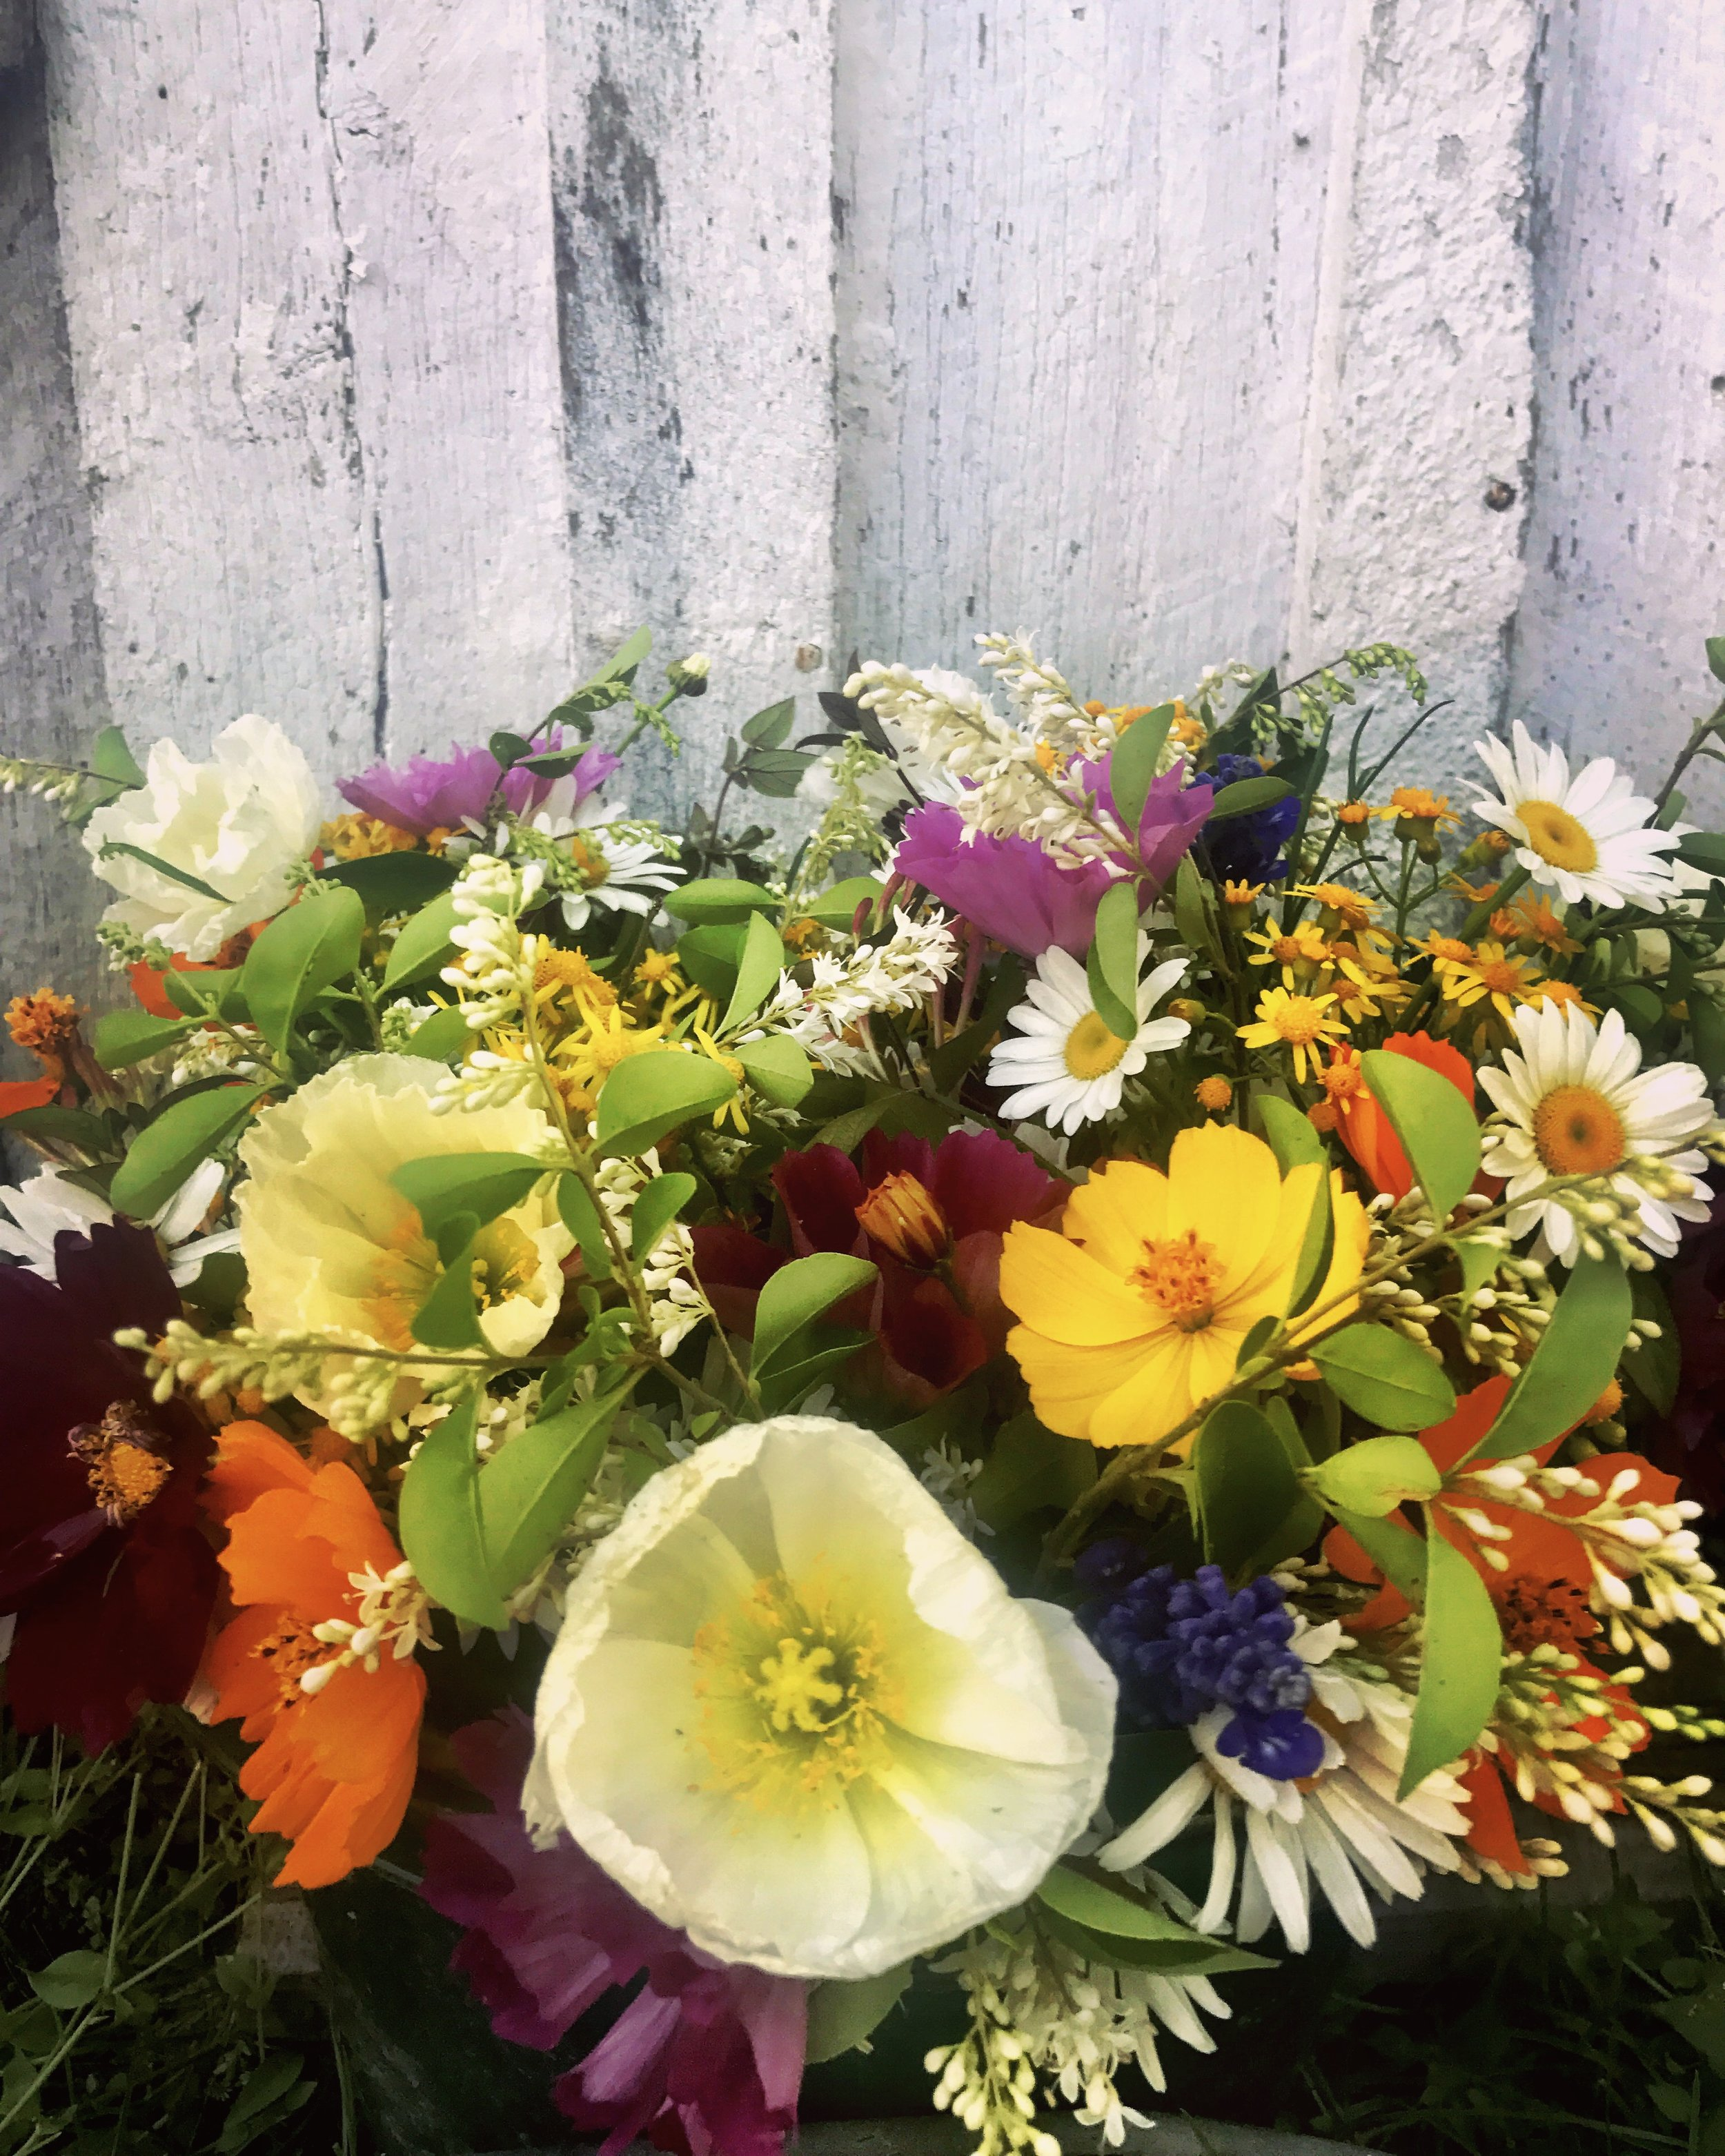 We have loads of flowers and love to make bouquets! Let us know when you need some flowers for your friends, loves, or yourself!